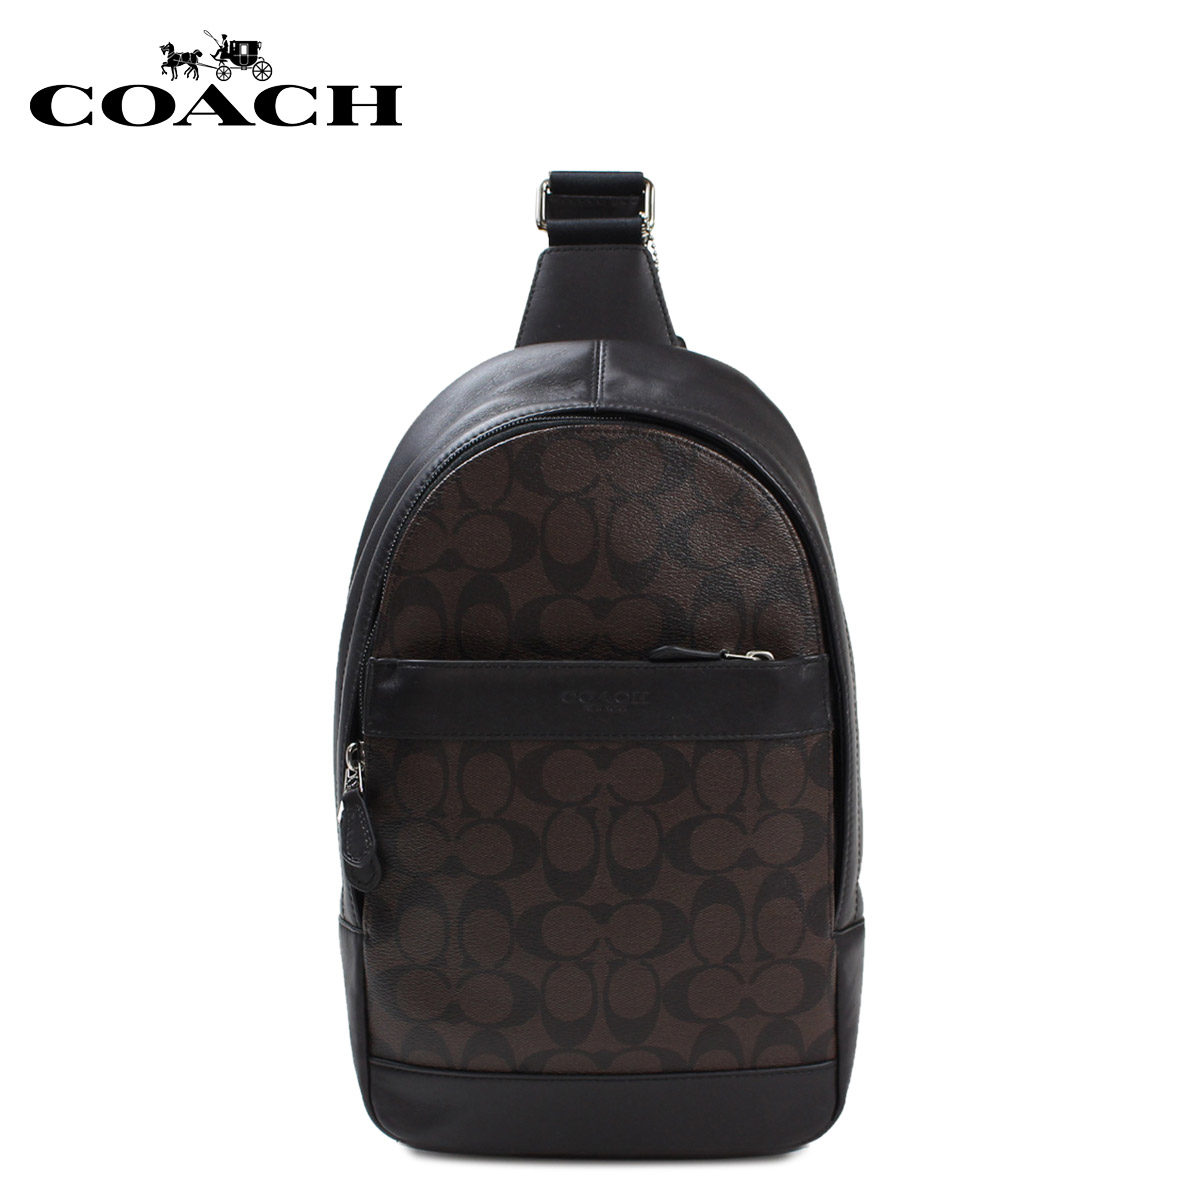 425aee94b ... Signature File Crossbody Bag, Style F58285 Coach bags mens COACH  shoulder bag Shoulder bag F54787 mahogany x Brown 1013 ...